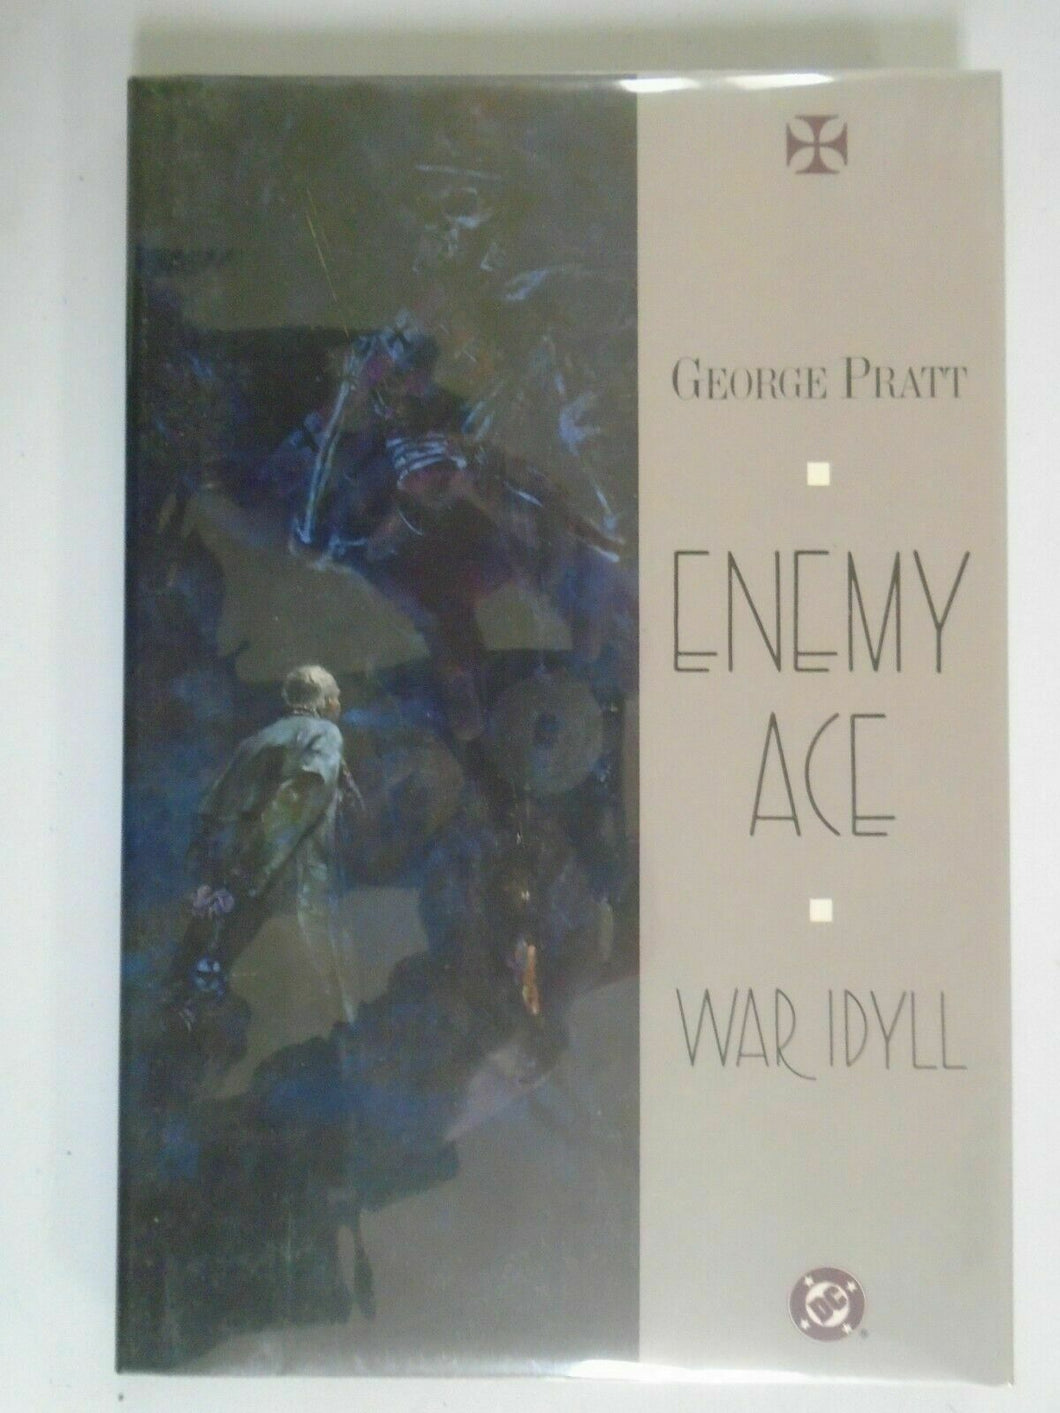 Enemy Ace War Idyll HC 8.0 VF (1990)